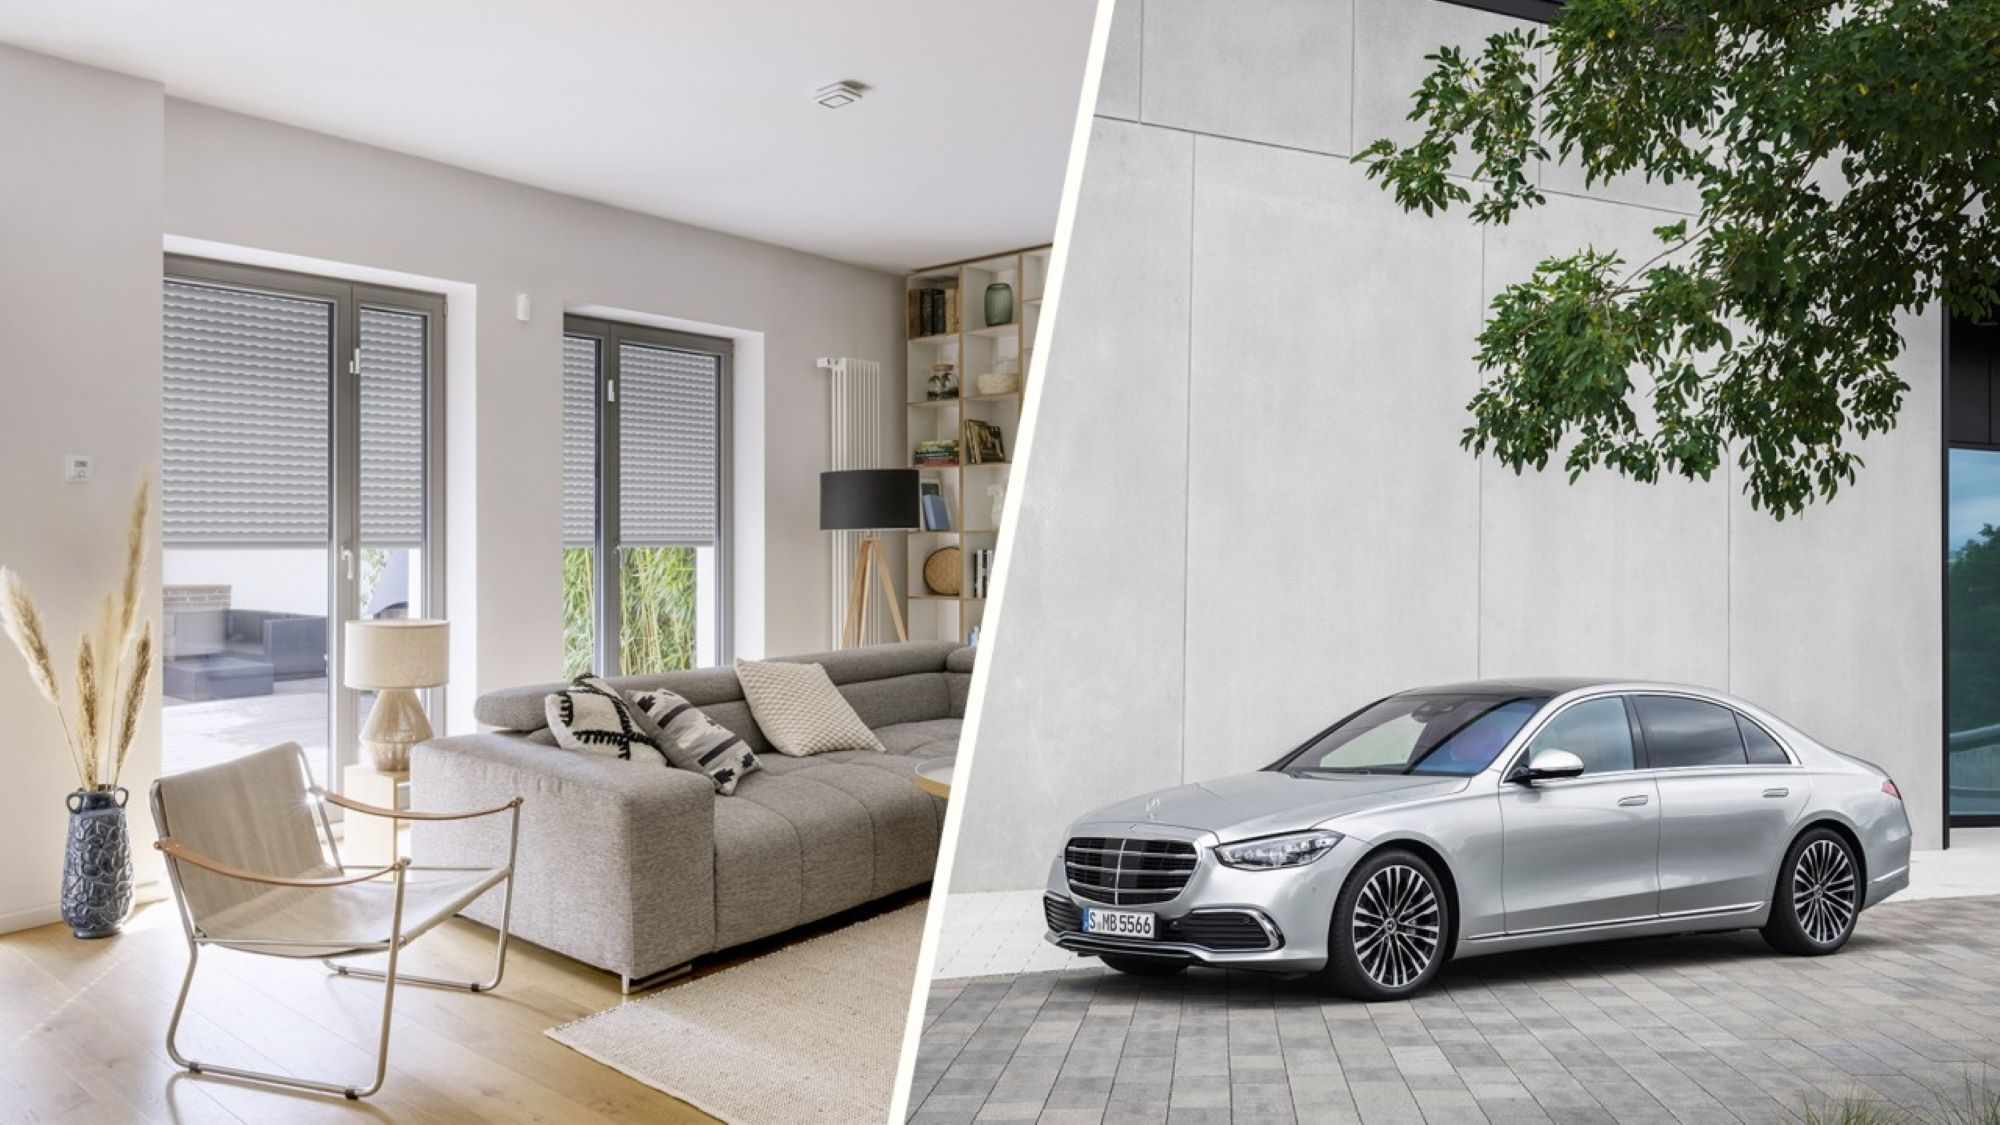 bosch_smart_home_x_daimler_partnerschaft_img_h720